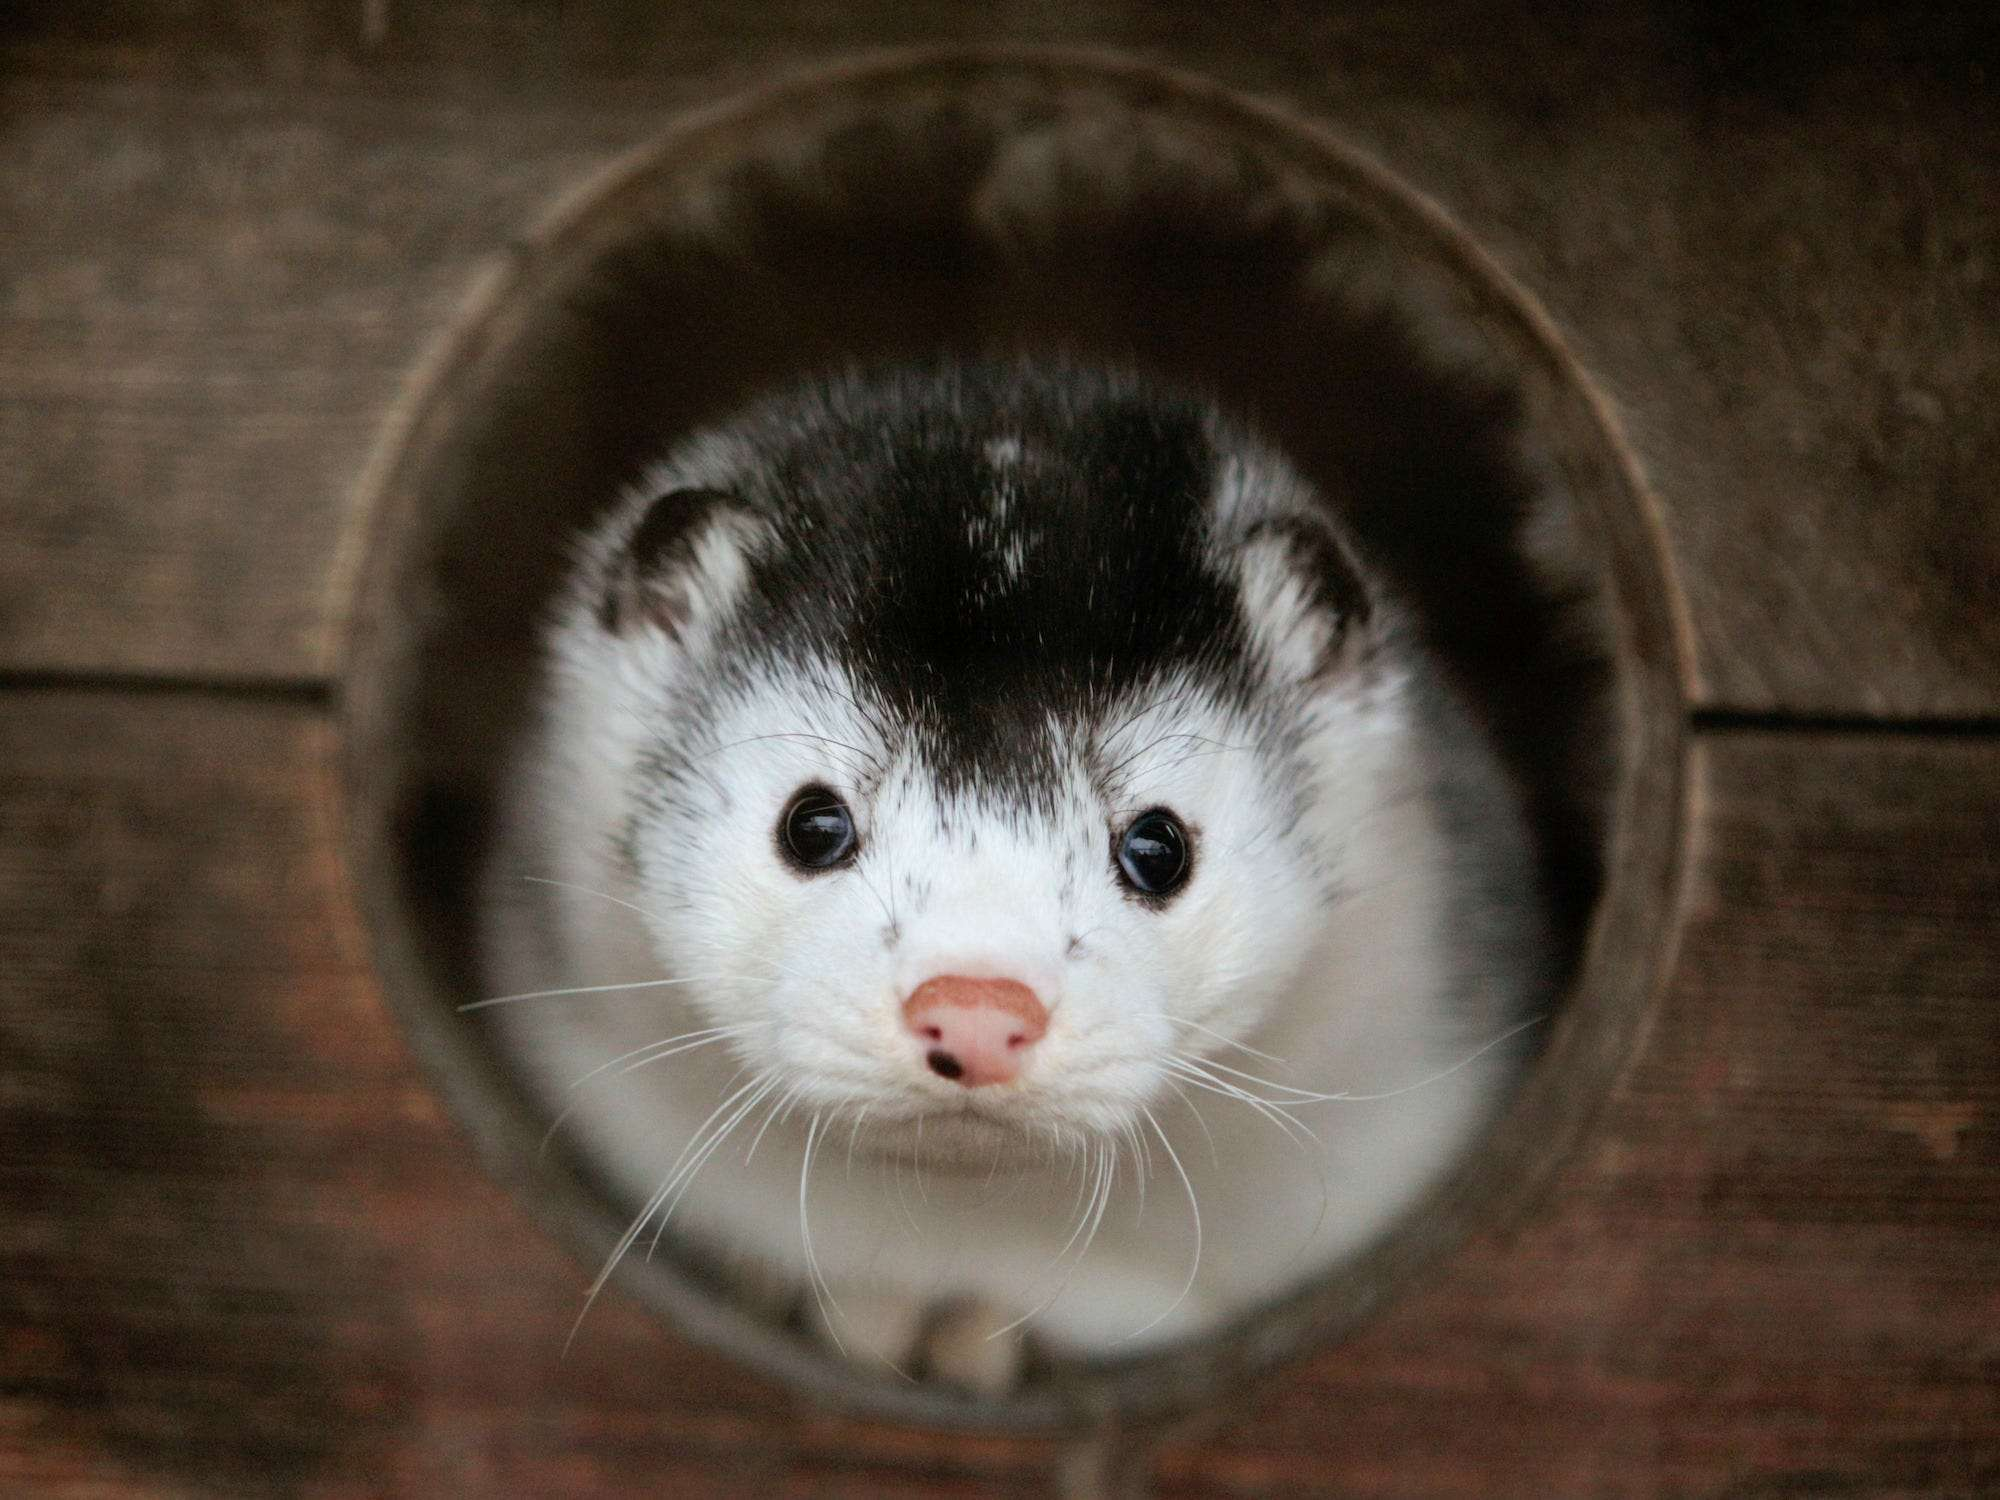 Dutch Order 10k Mink Culled Because Of Covid 19 But Deaths Postponed Business Insider